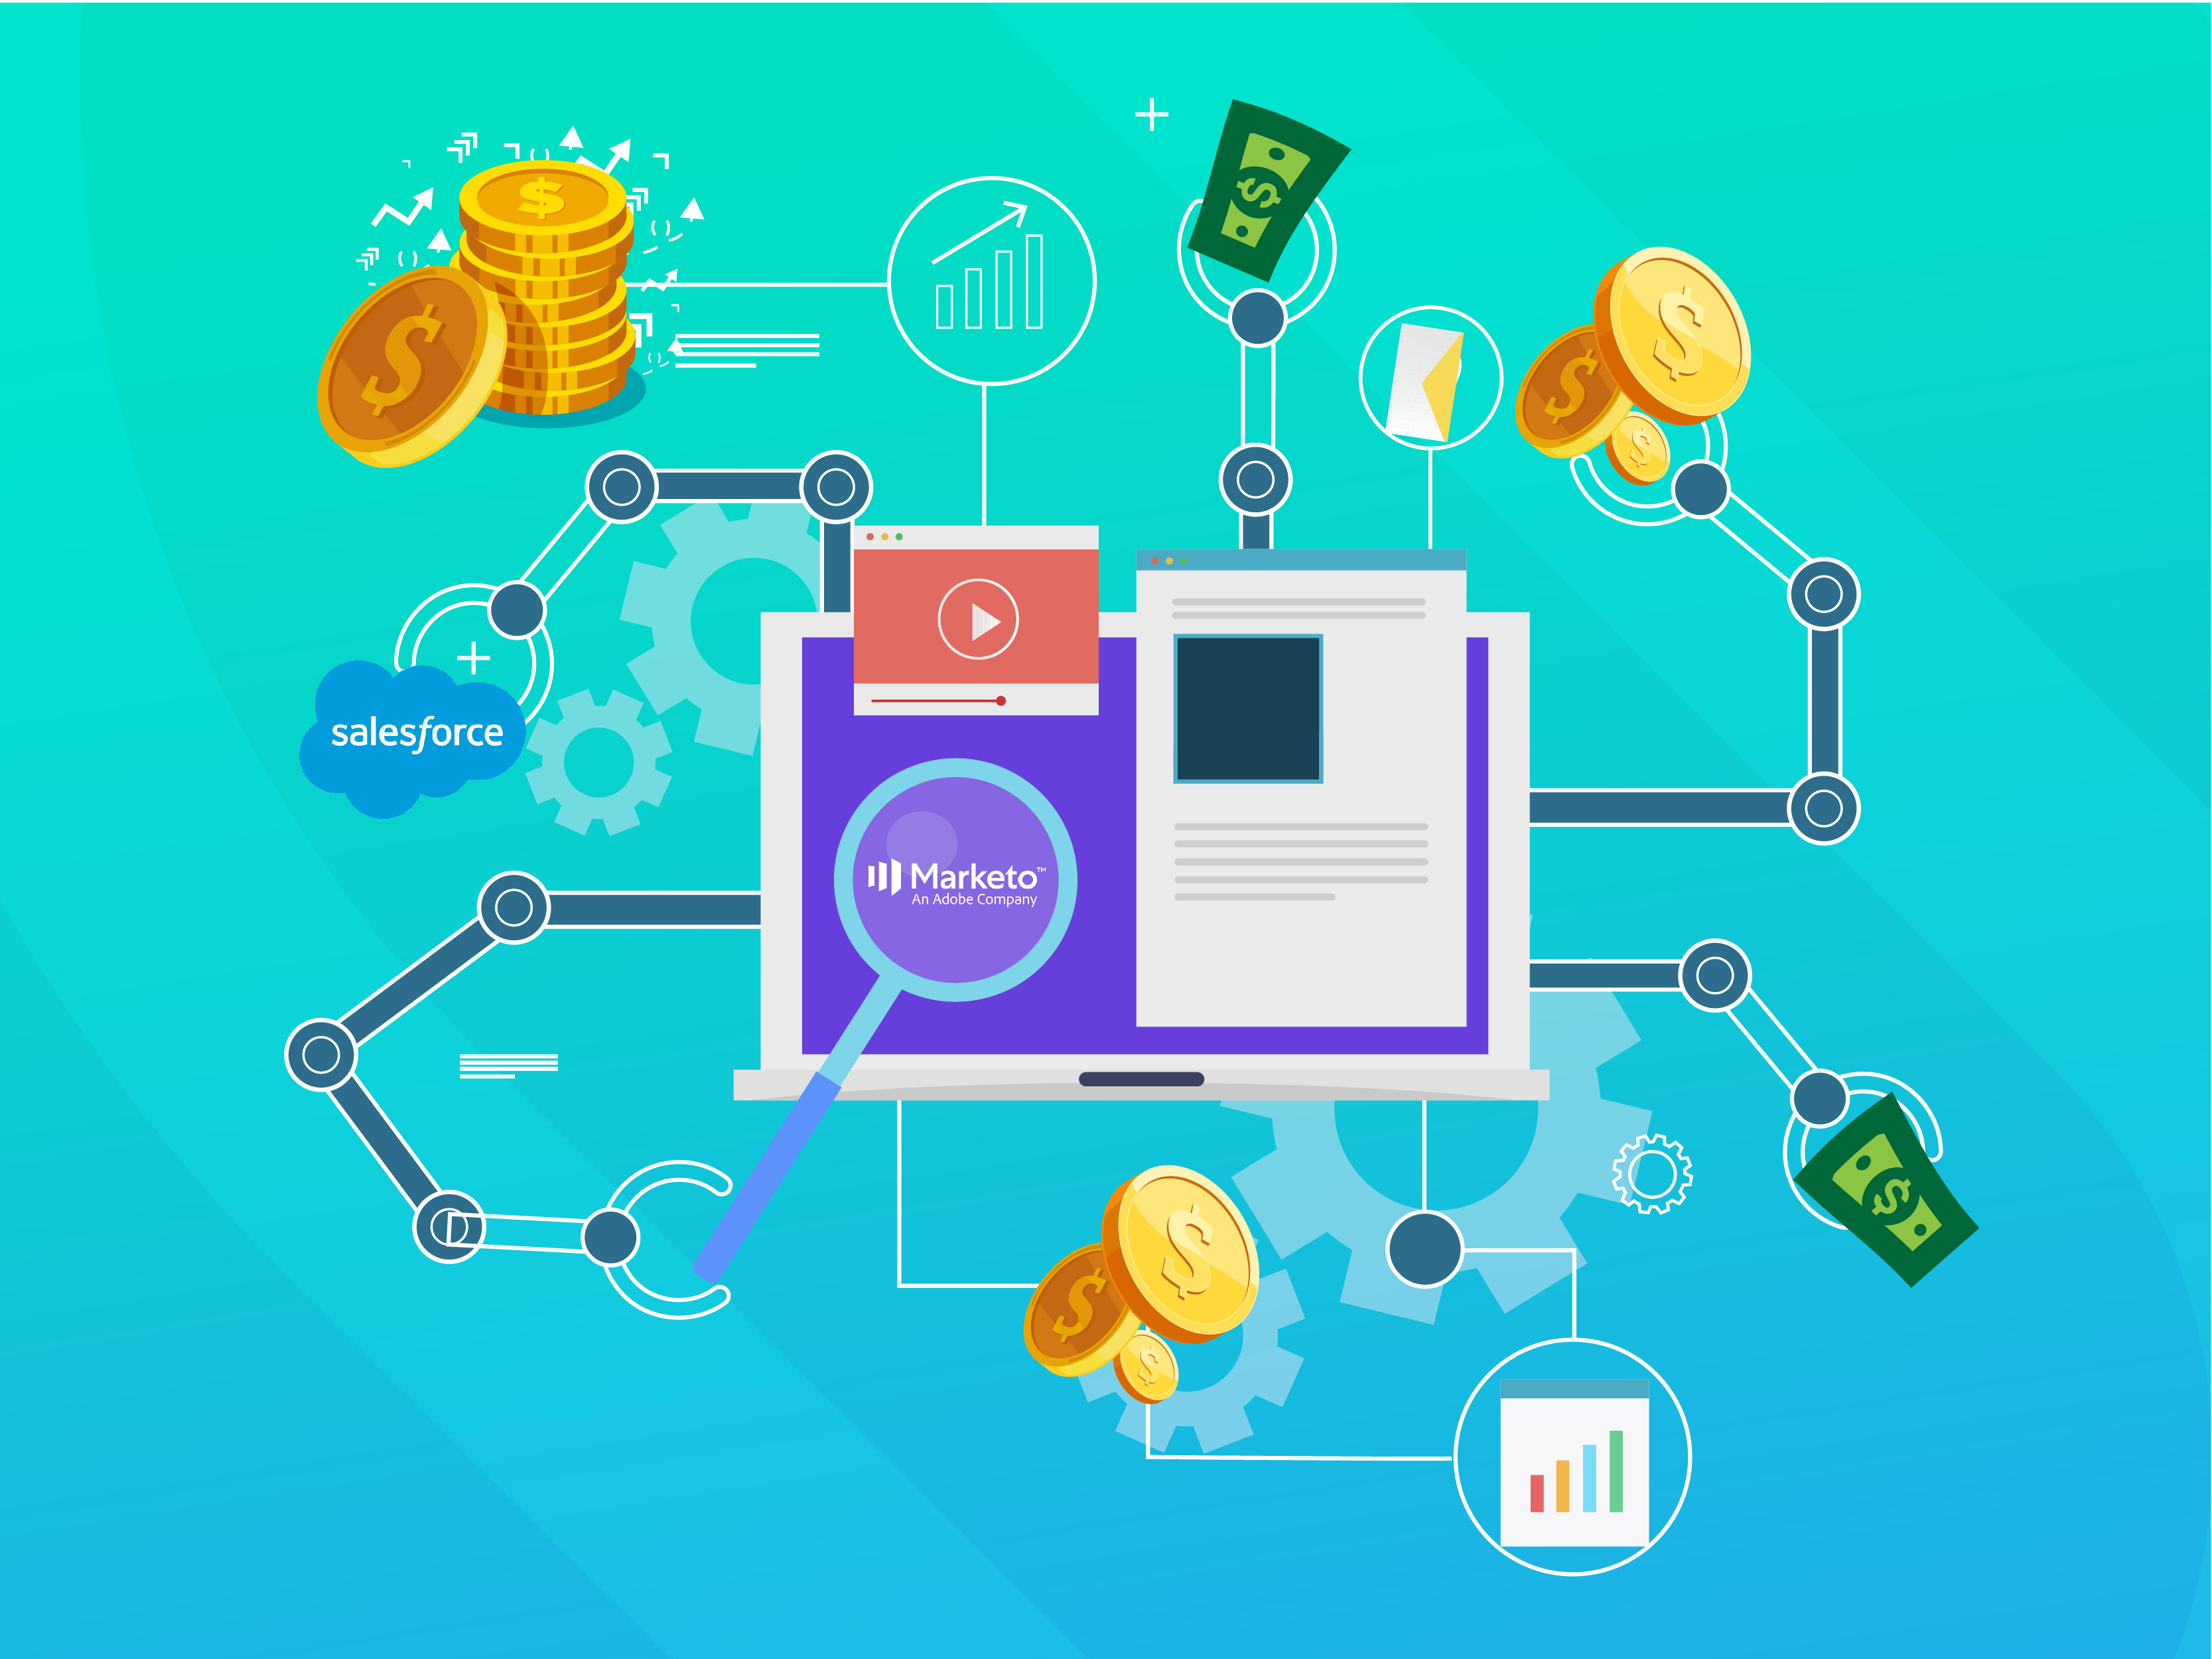 illustration of Salesforce and Marketo logos with coins